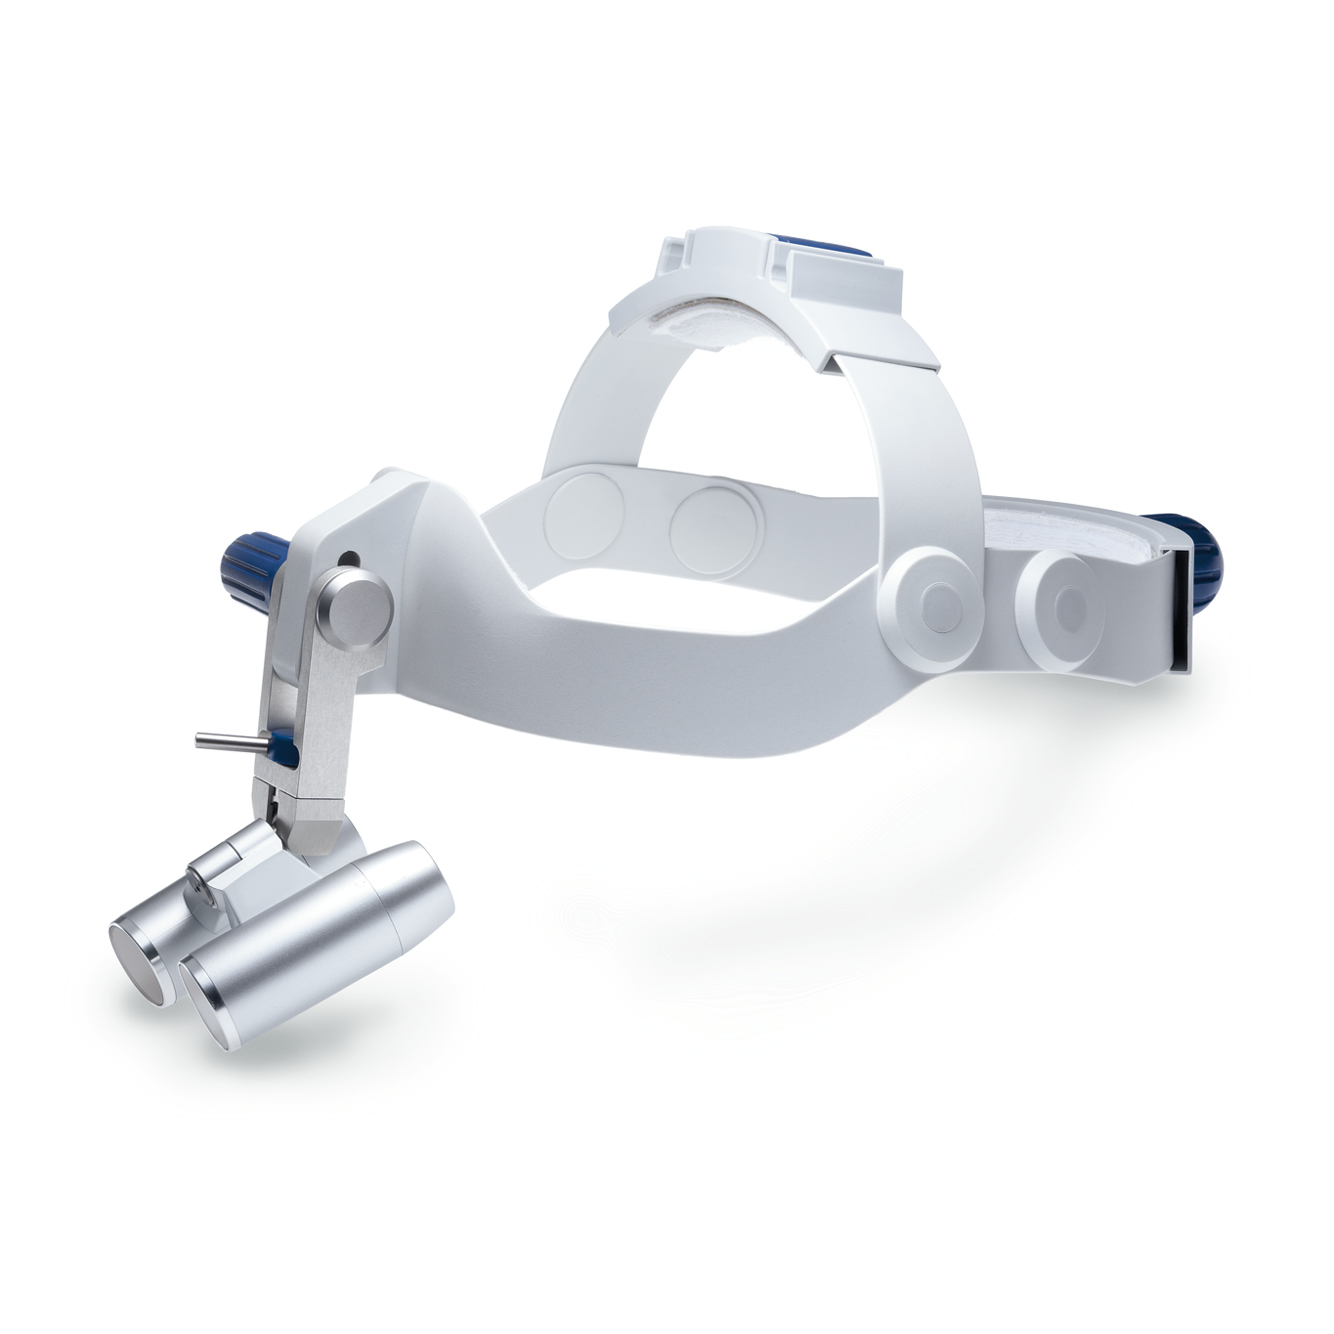 ZEISS EyeMag Pro S product photo